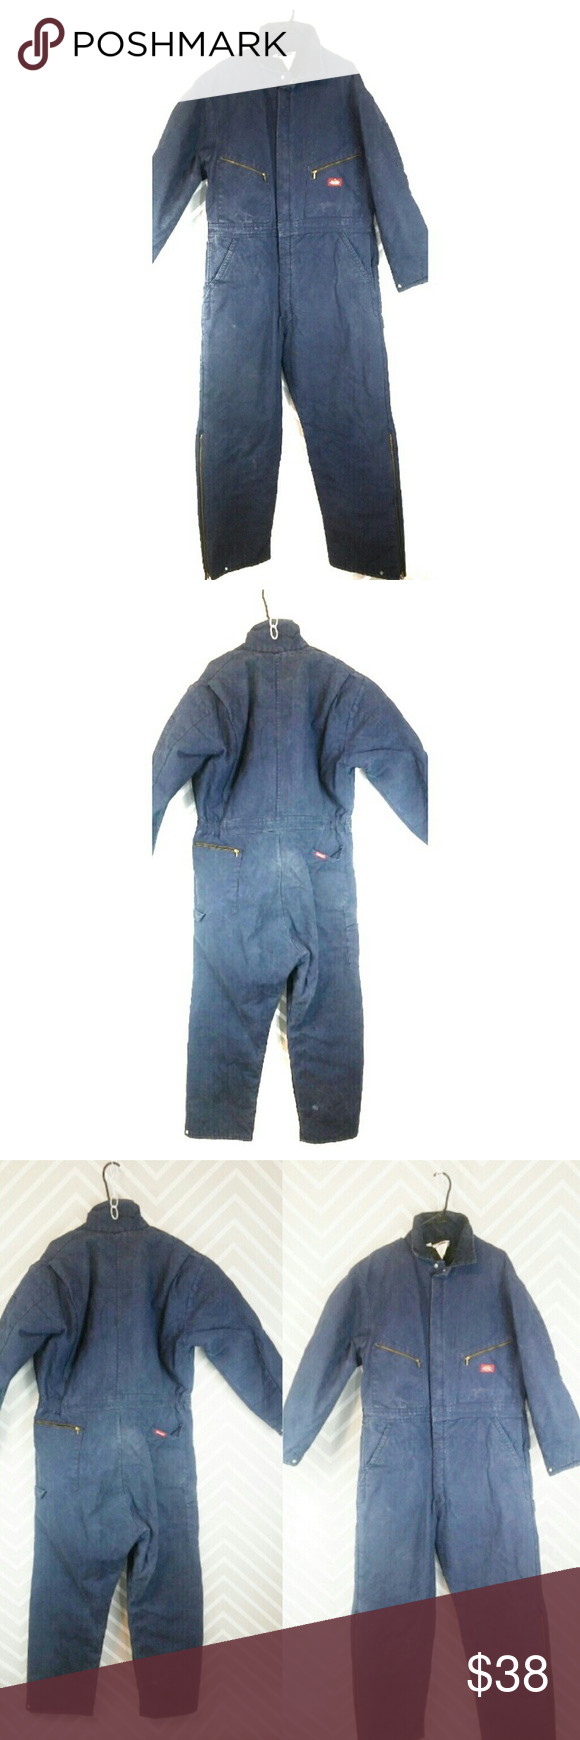 dickies insulated work coveralls unisex regular work on insulated work overalls id=89372